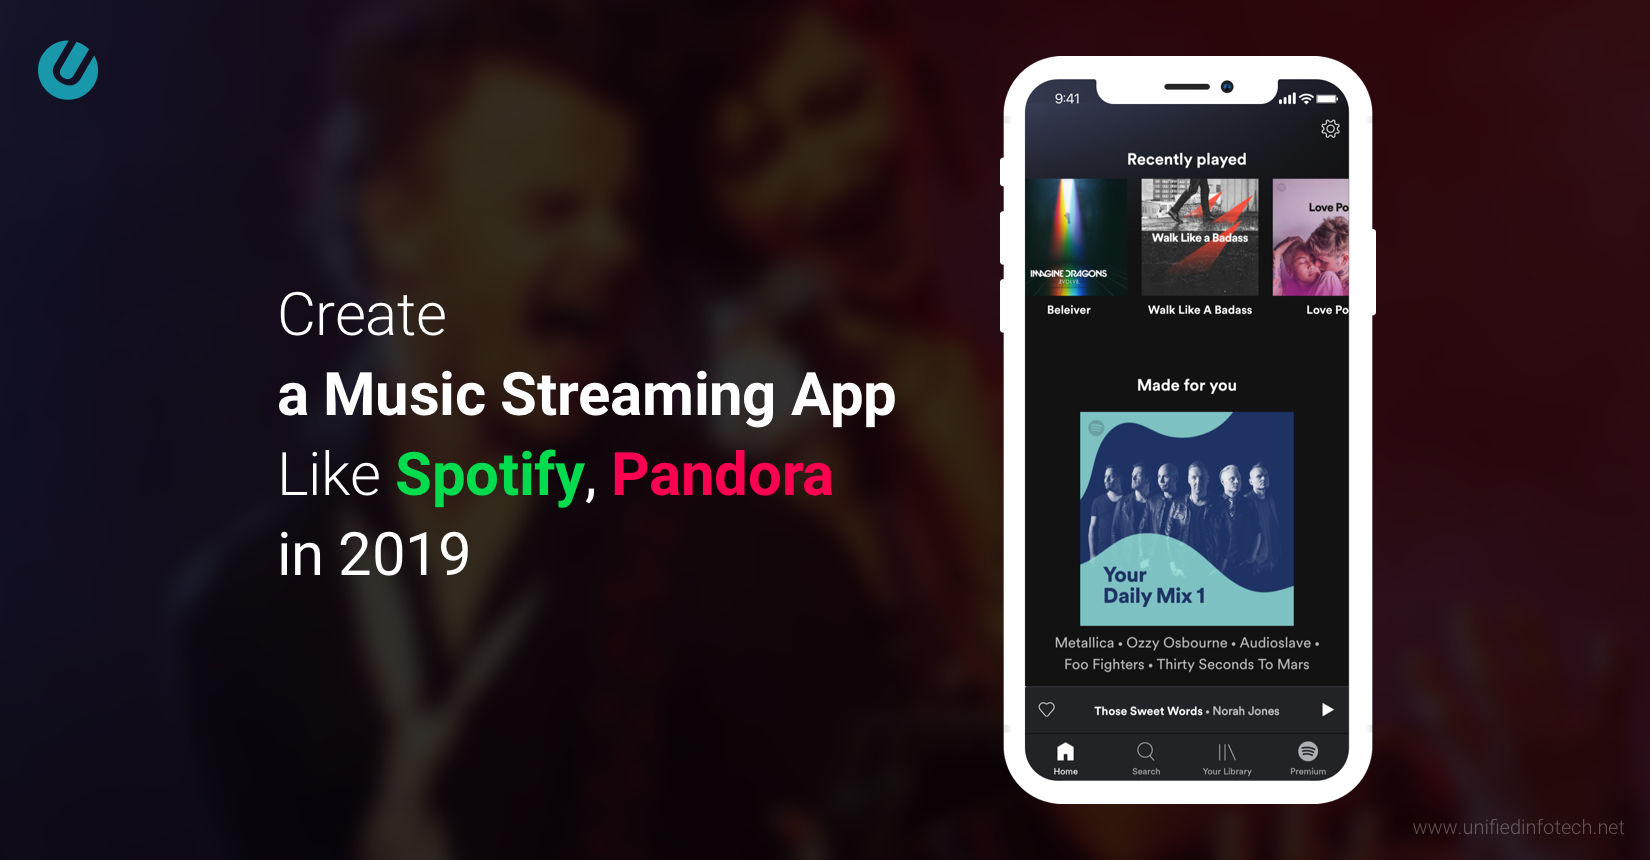 Roadmap to Create a Music Streaming App like Spotify | Unified Infotech